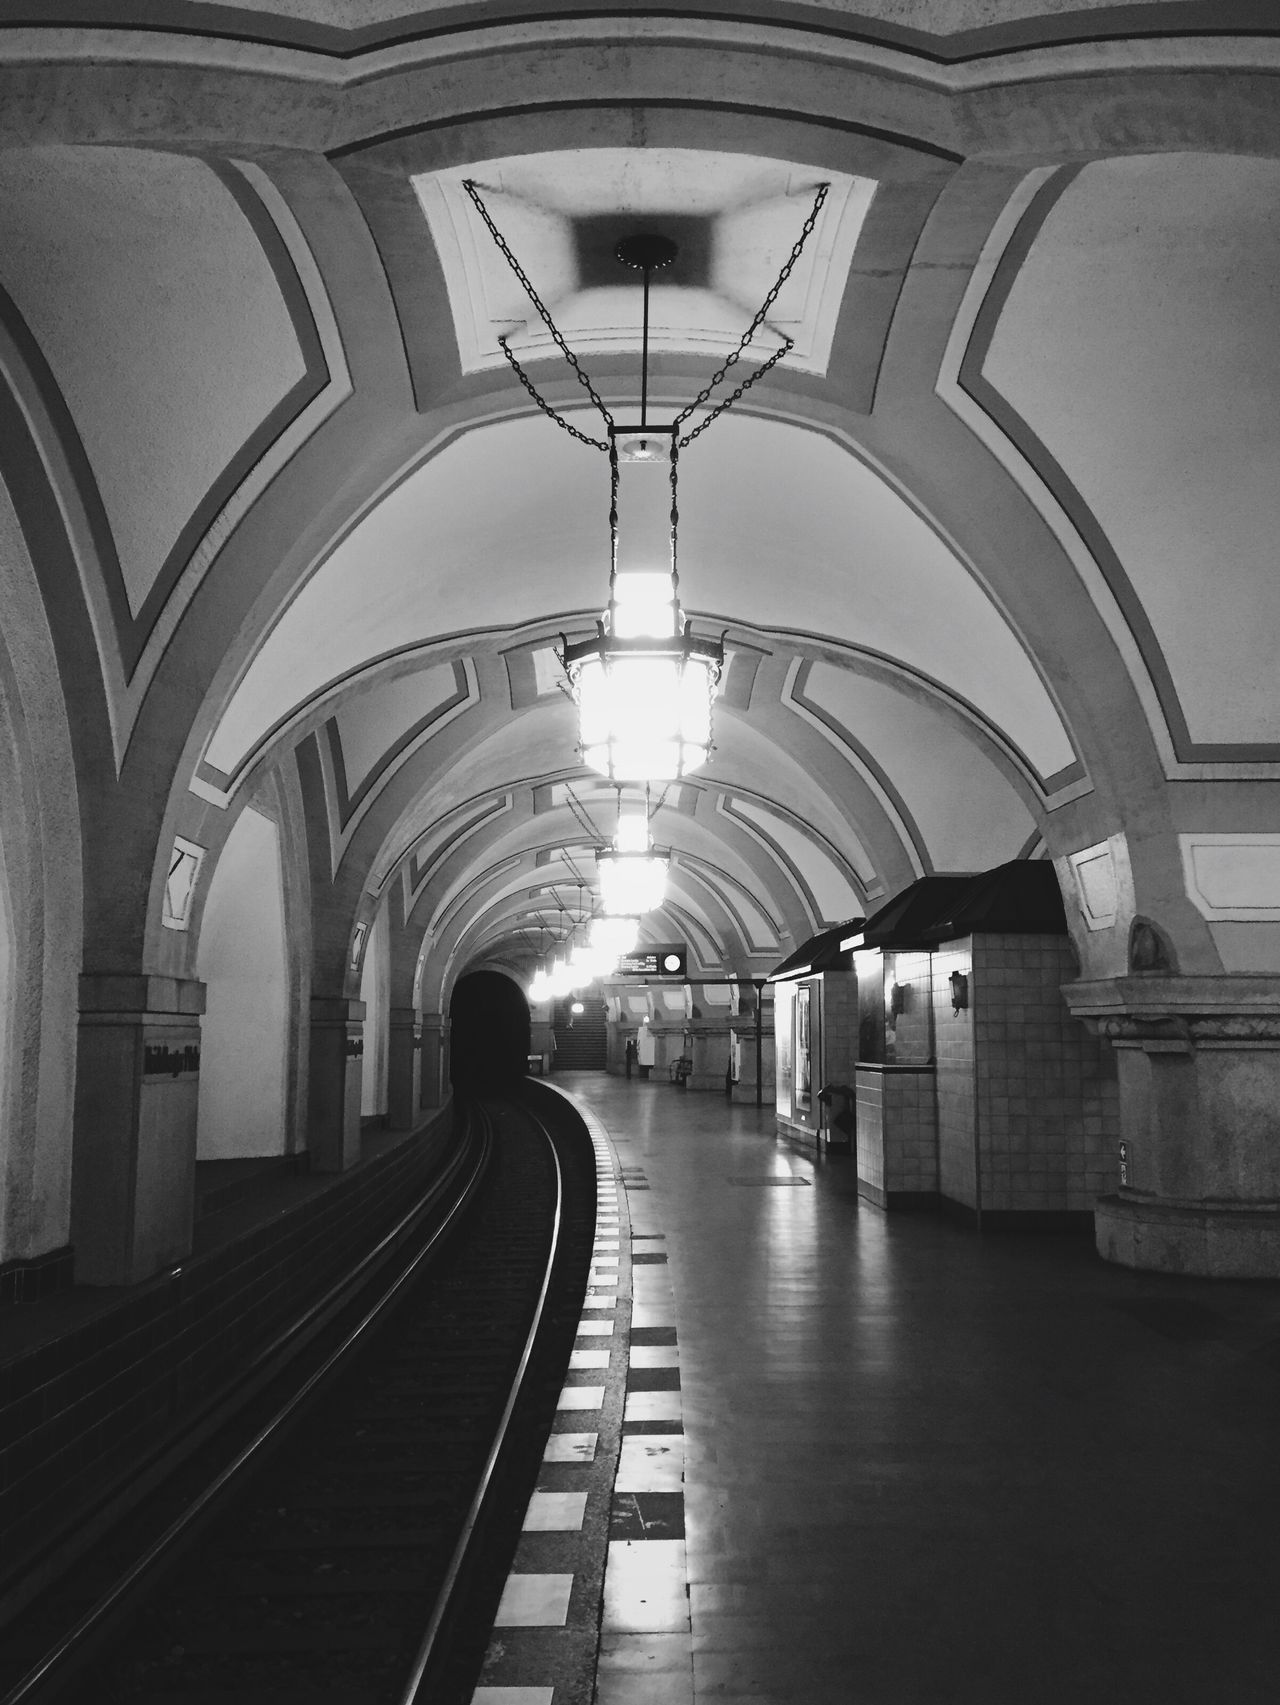 Arch Built Structure Architecture Indoors  Illuminated No People Subway Subway Station Commuting Berlin Heidelberger Platz Blackandwhite